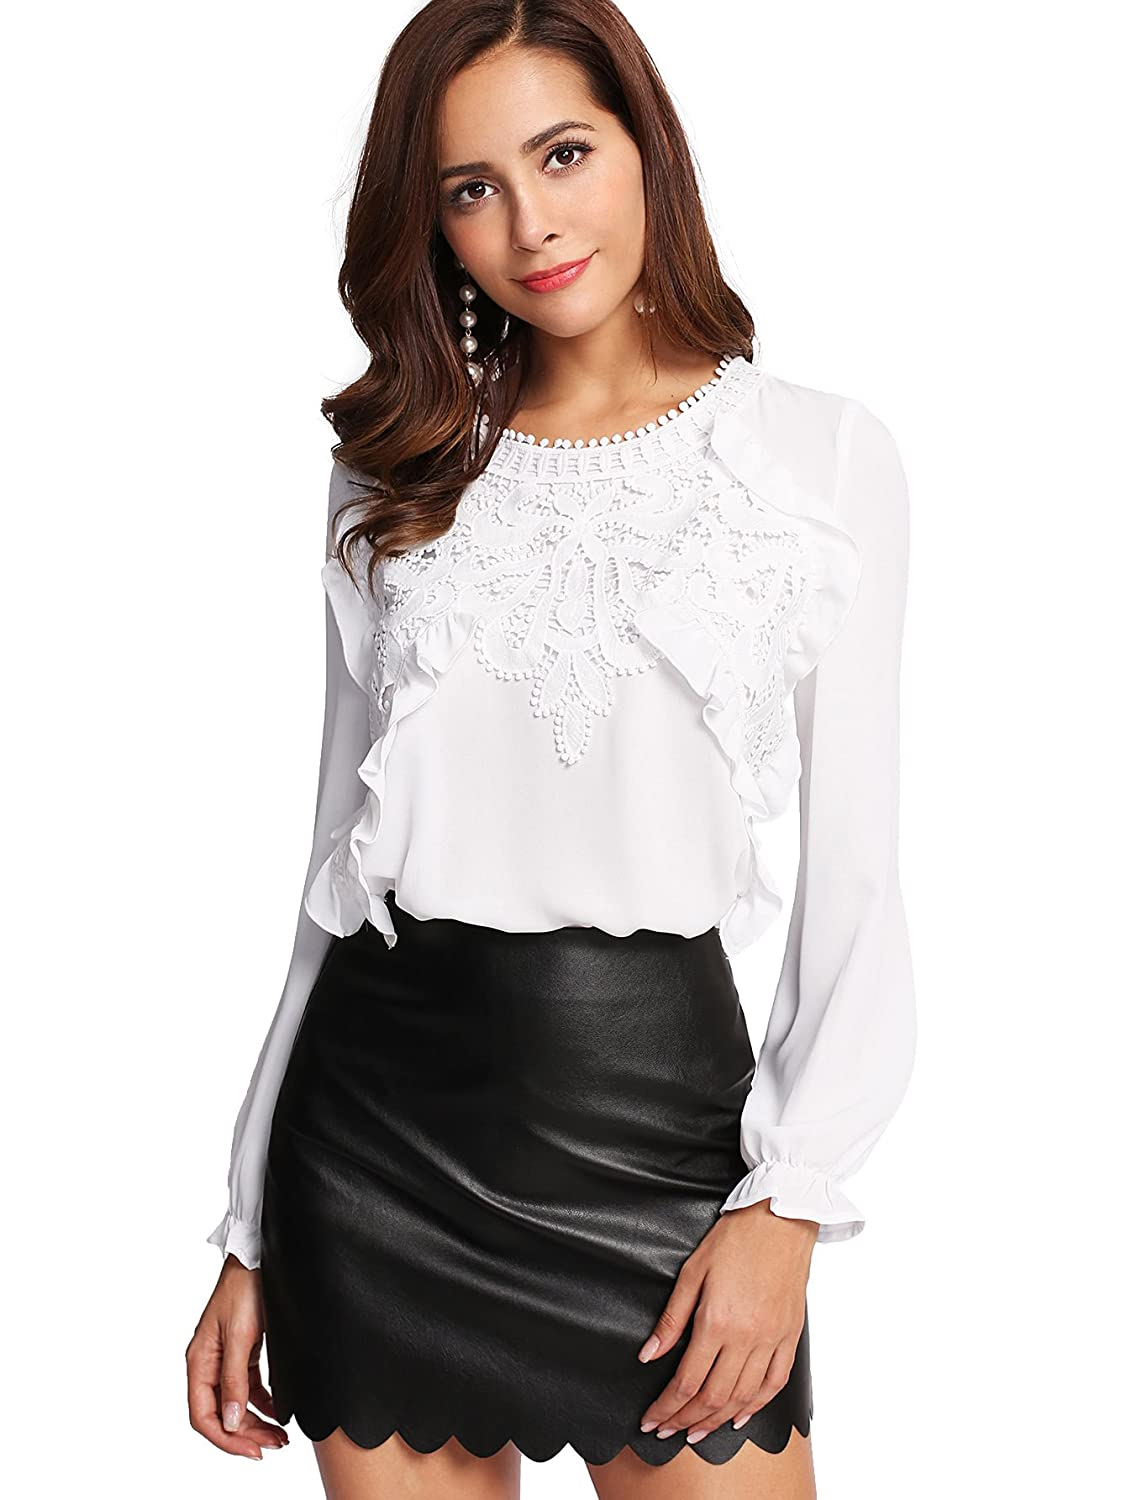 da81445d11335c Romwe Women s Elegant Long Sleeve Applique Keyhole Ruffle Blouse Tops at  Amazon Women s Clothing store